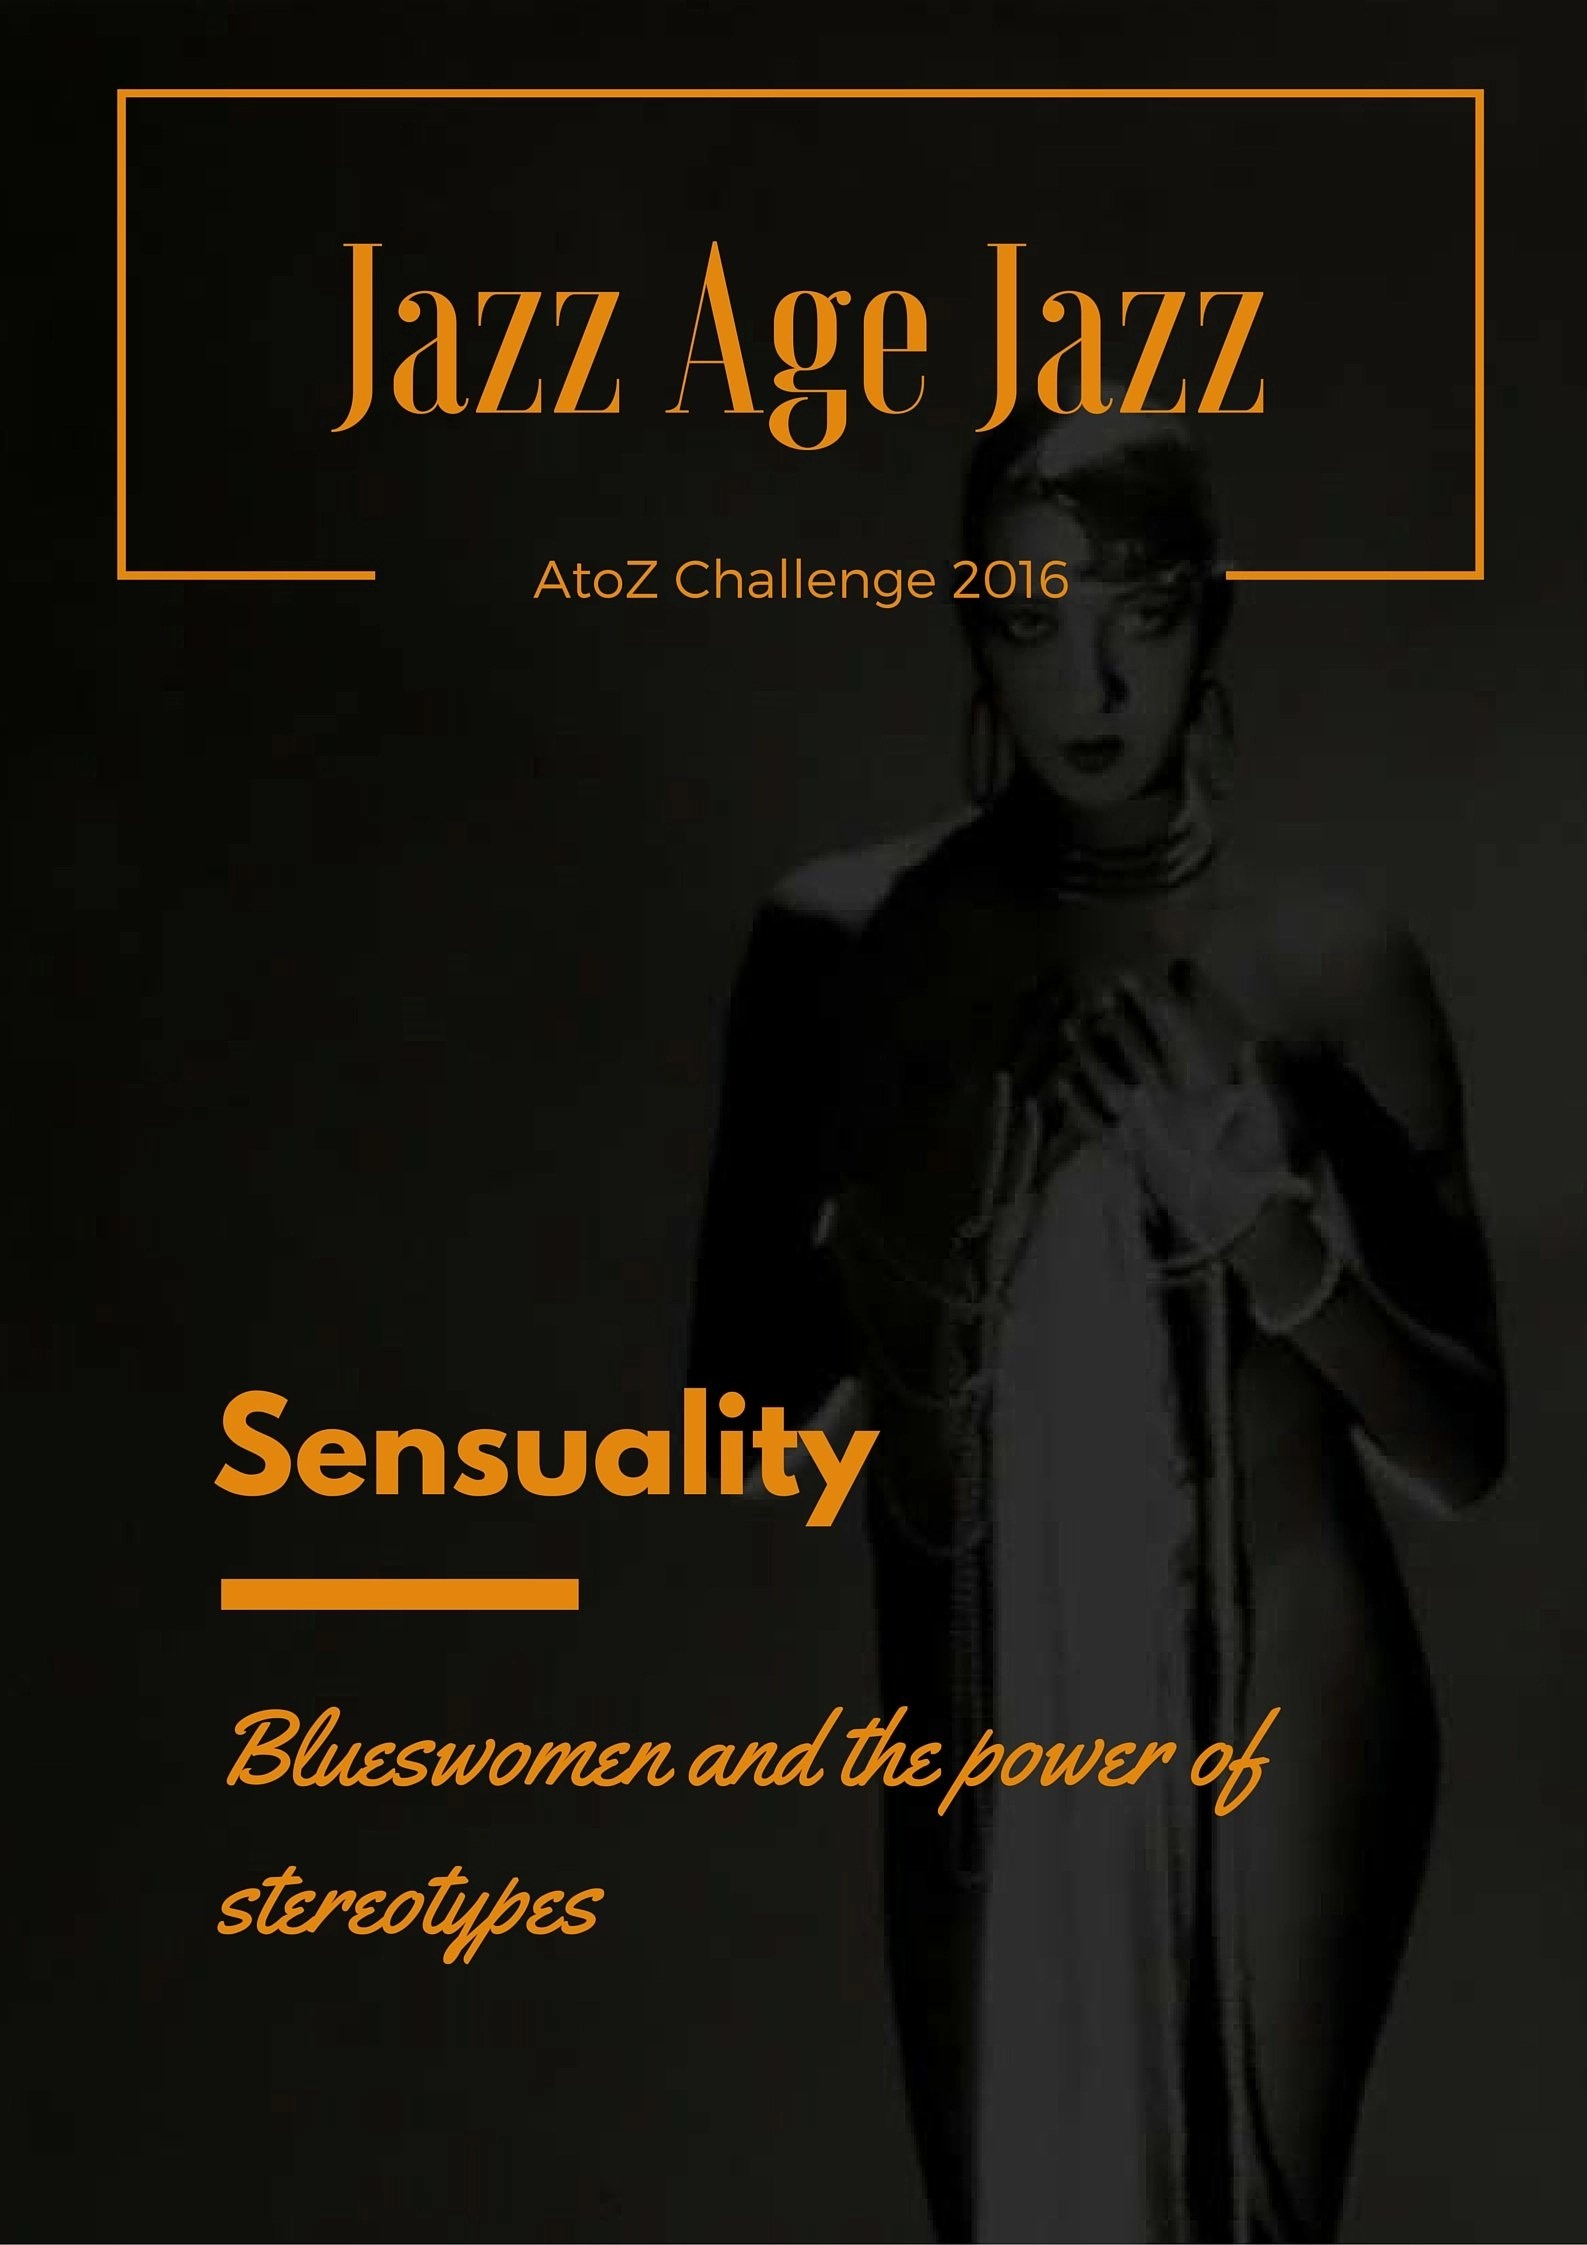 Jazz Age Jazz - Sensuality: blueswomen and the power of stereotype